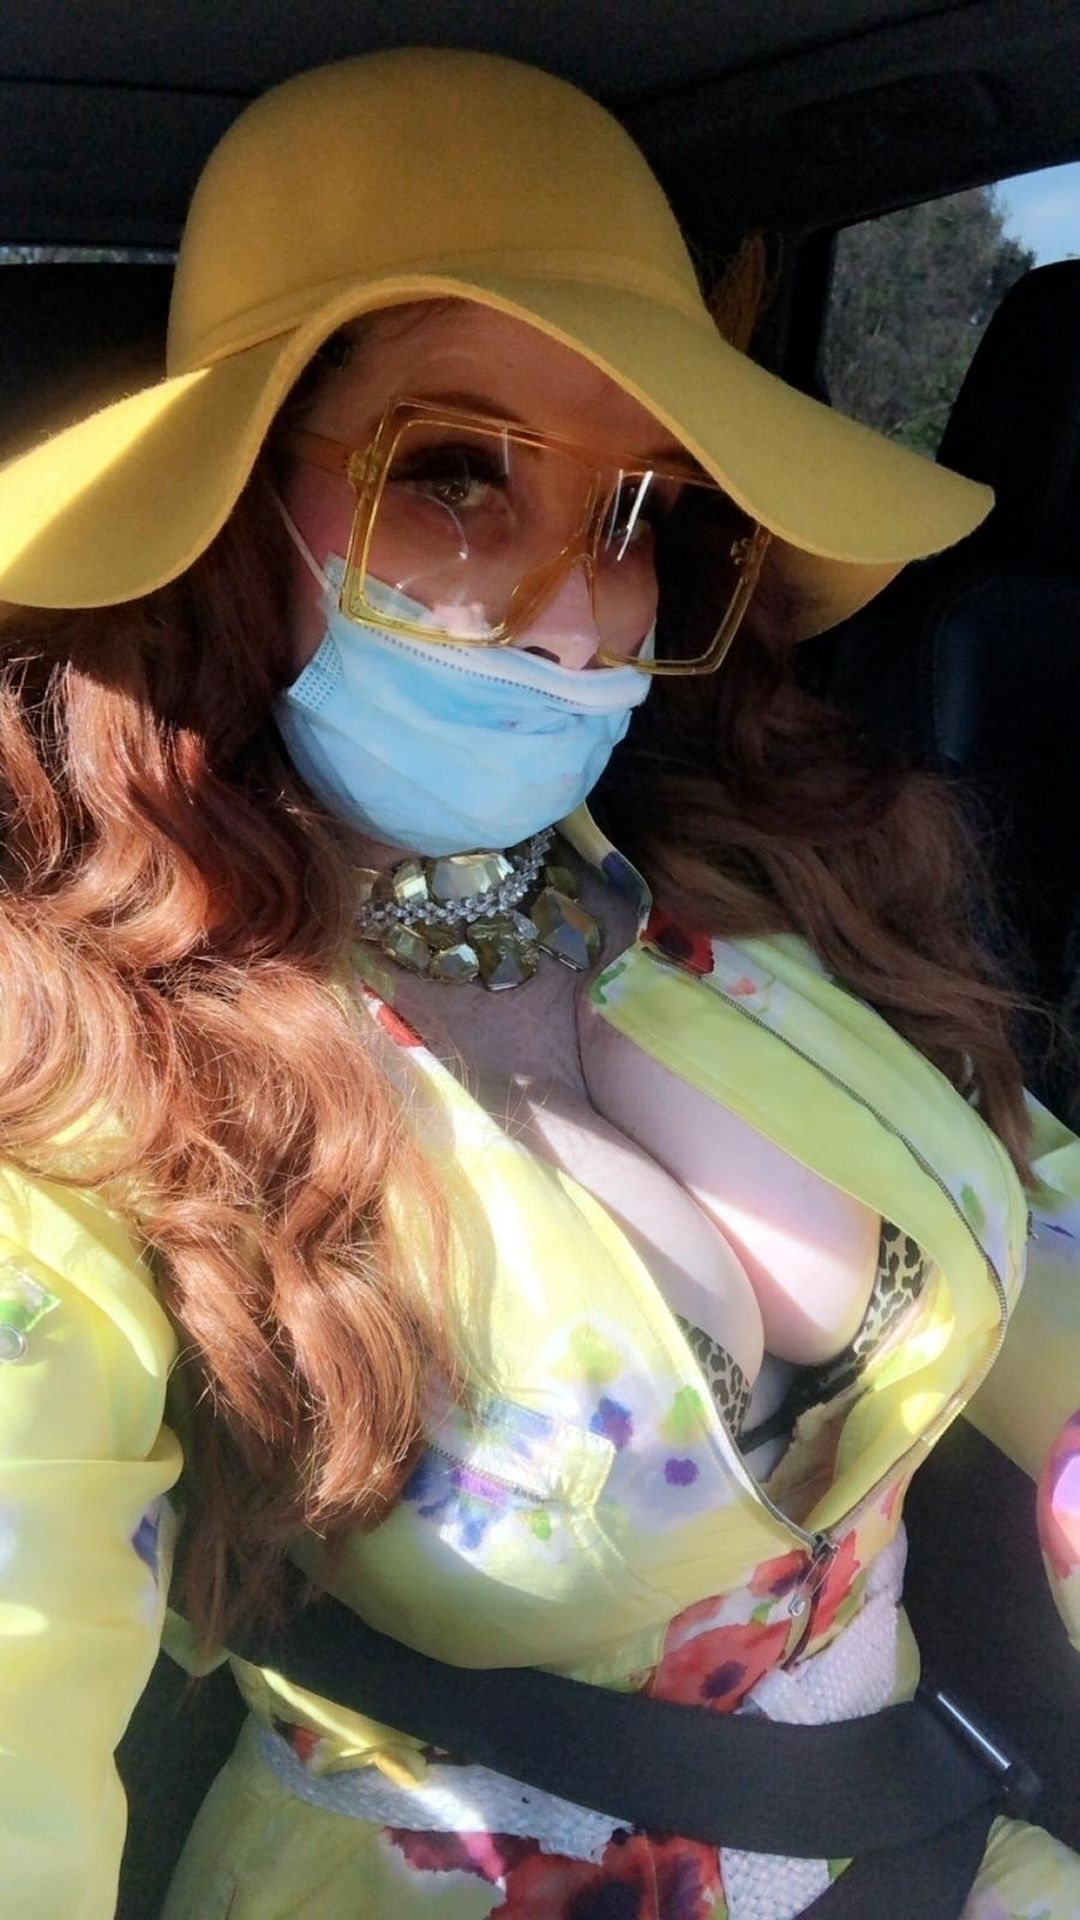 Phoebe Price Isn't Taking Any Chances When It Comes To The Coronavirus 0022